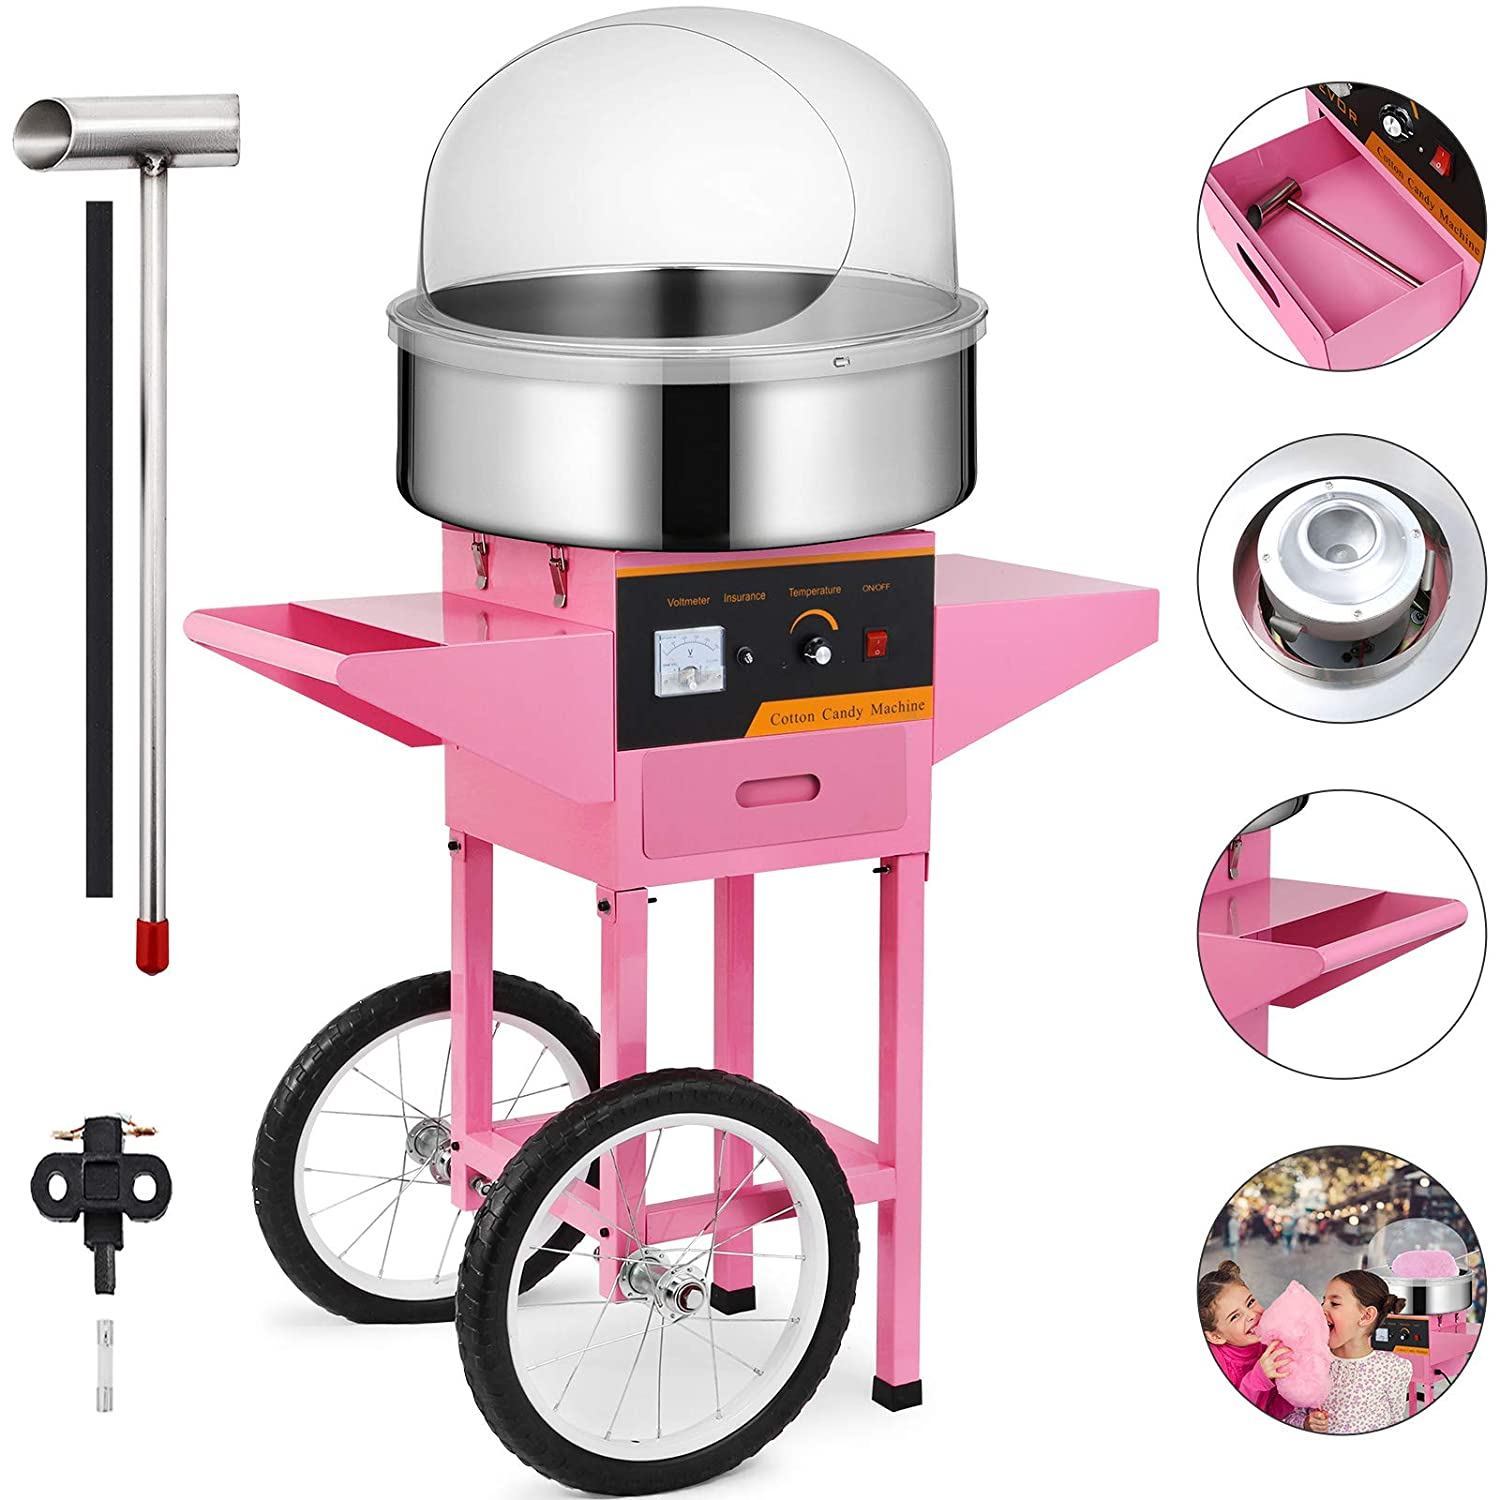 Happybuy Electric Candy Floss Maker 20.5 Inch Cotton Candy Machine with Cart and Cover 1030W for Various